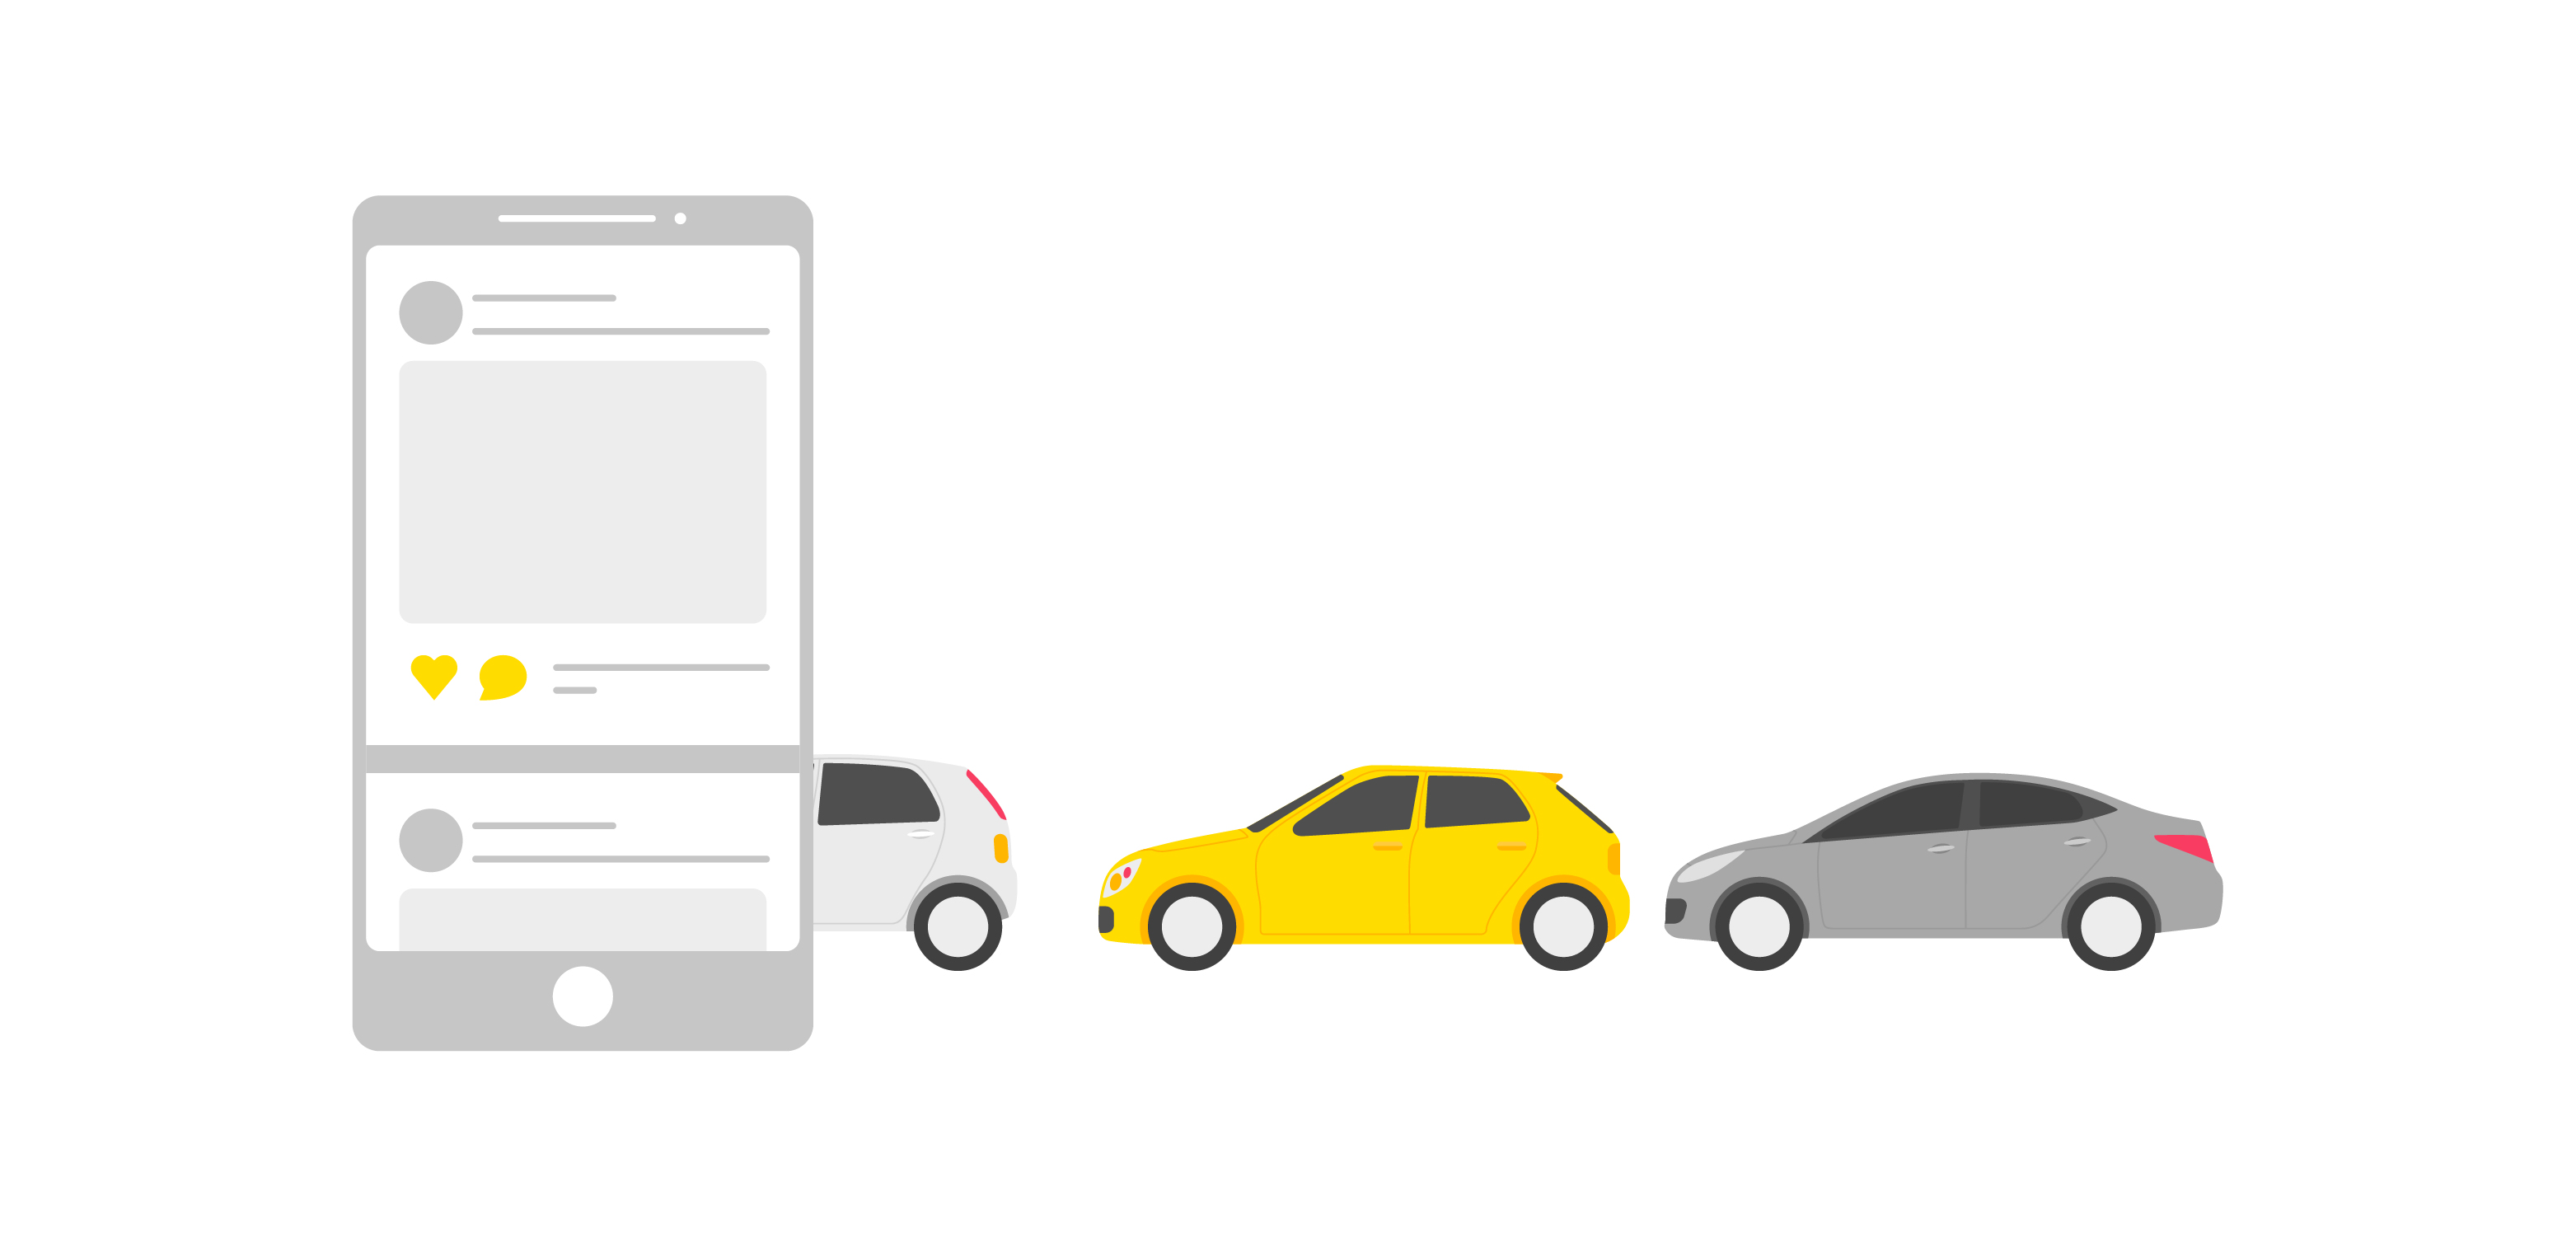 image of phone and cars to infer driving traffic to website